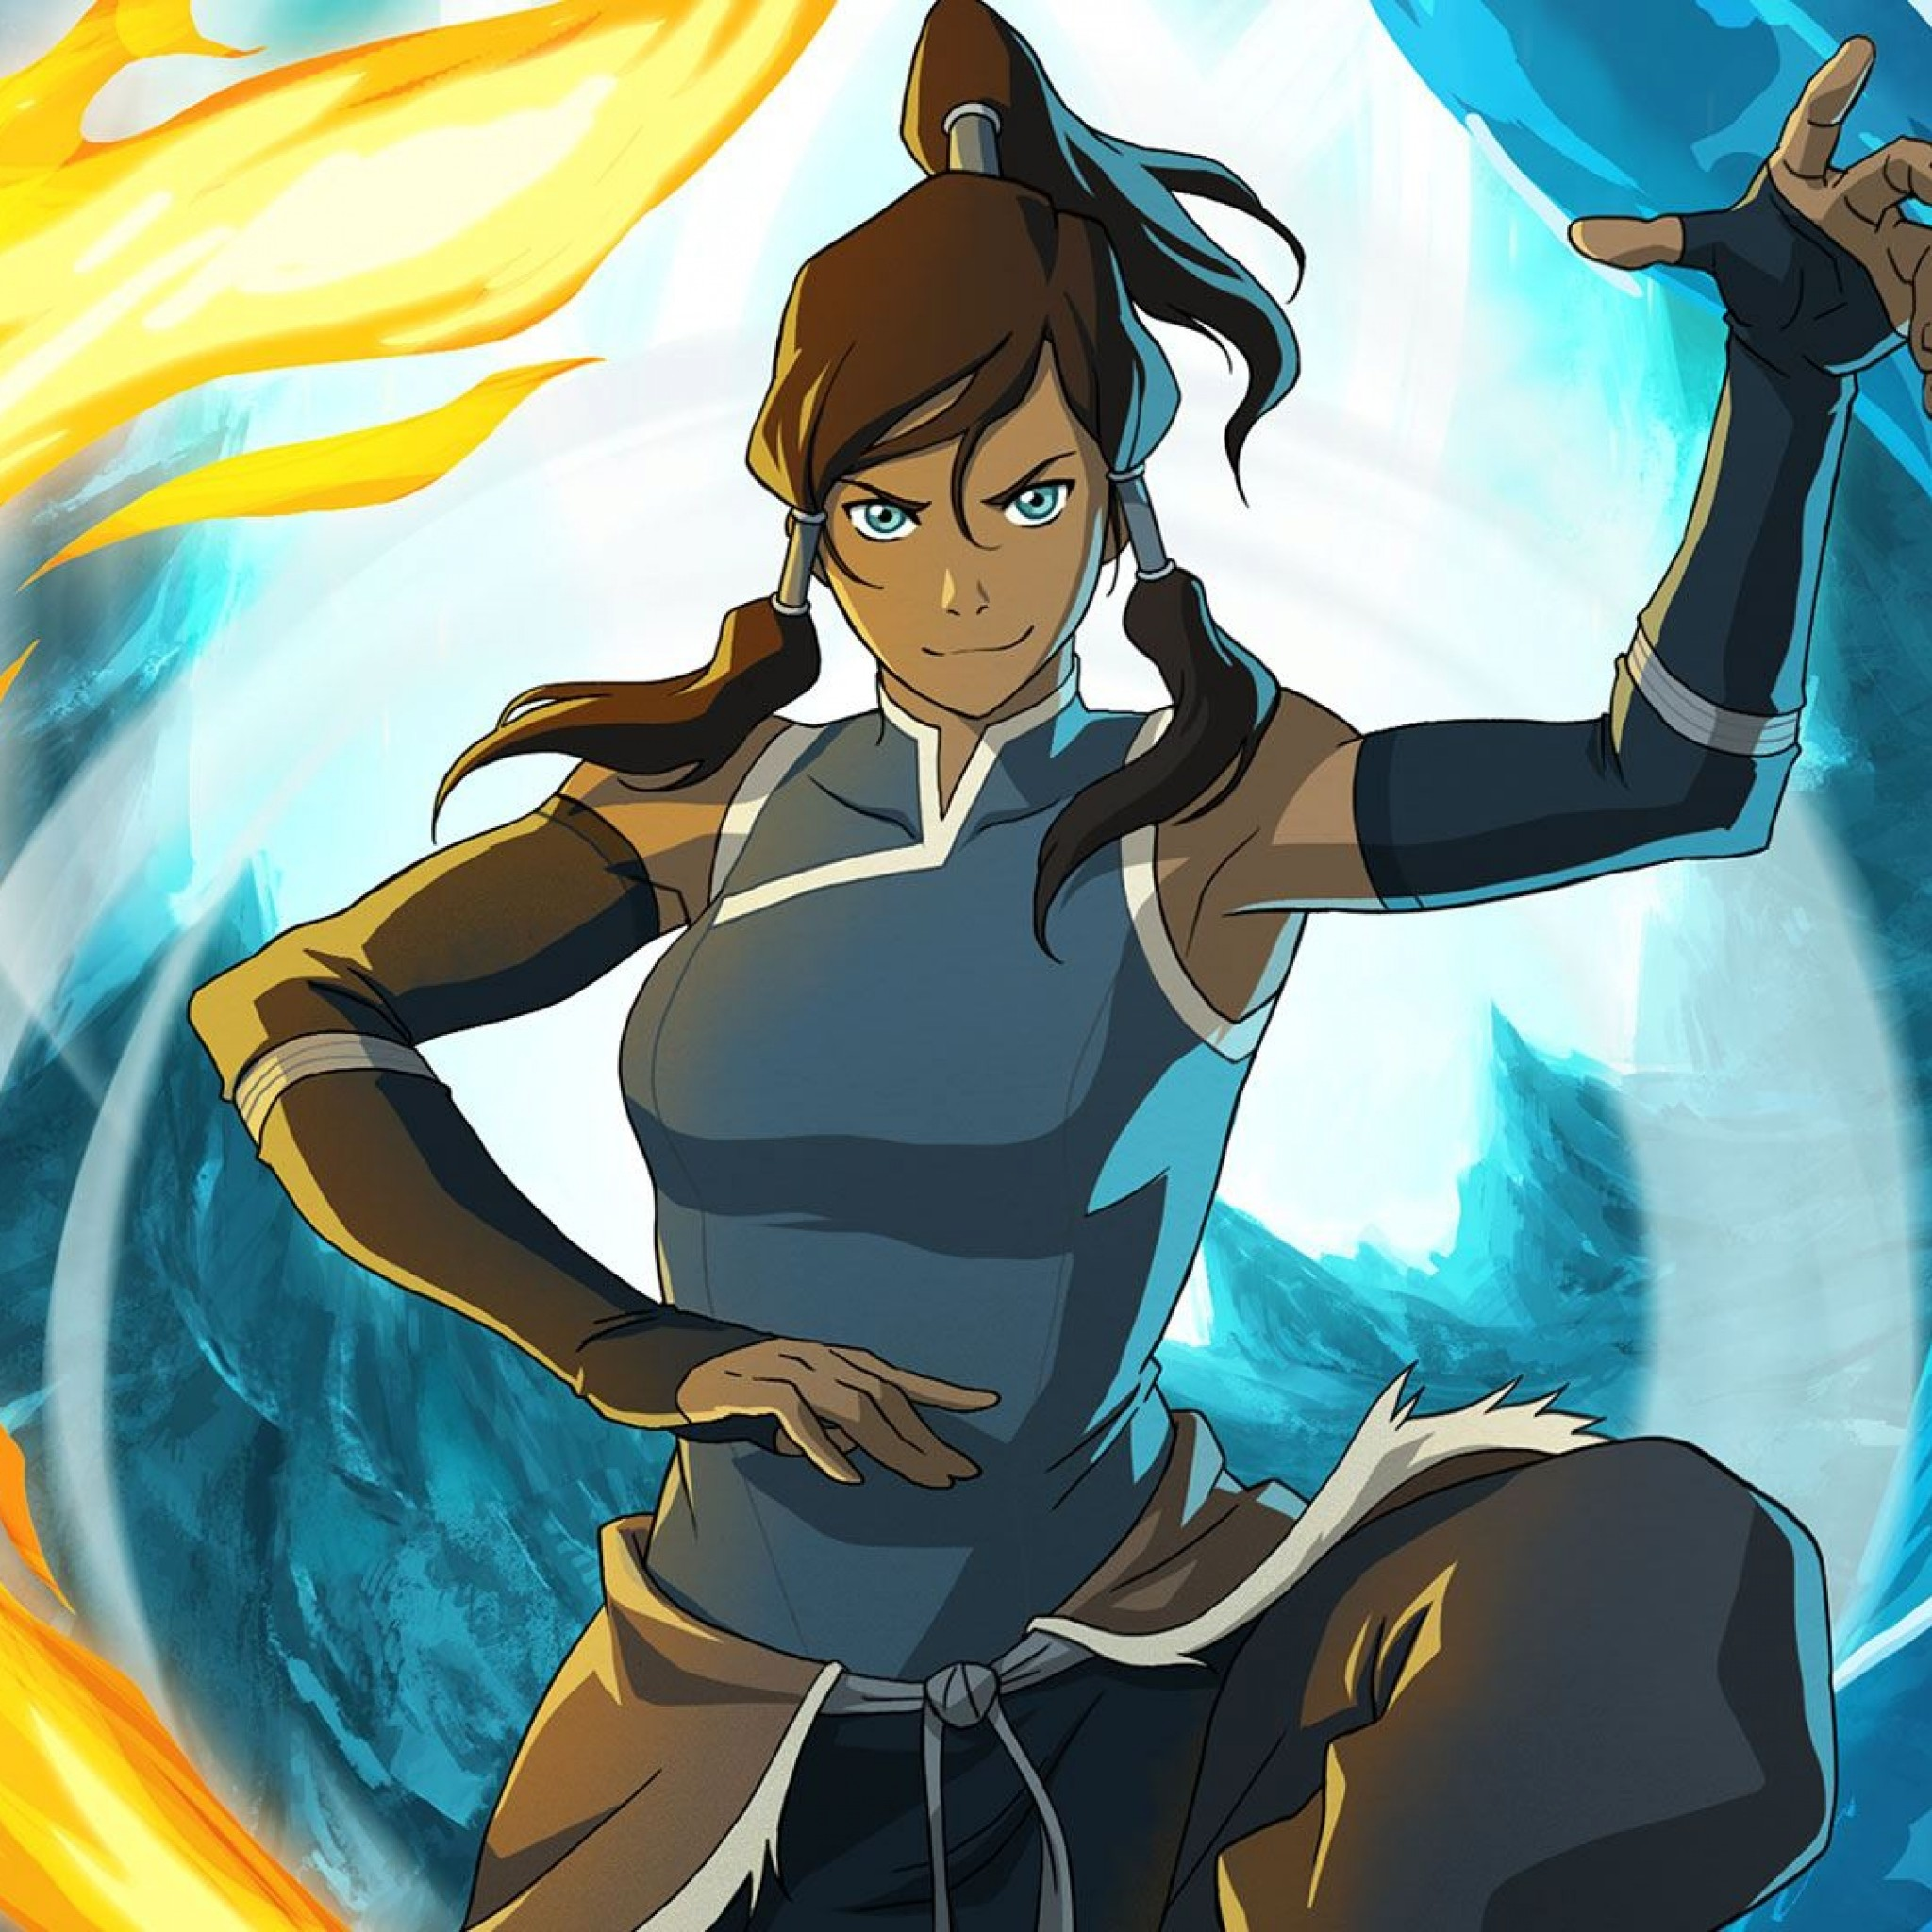 Preview wallpaper the legend of korra, avatar legend of the corre, girl,  magician